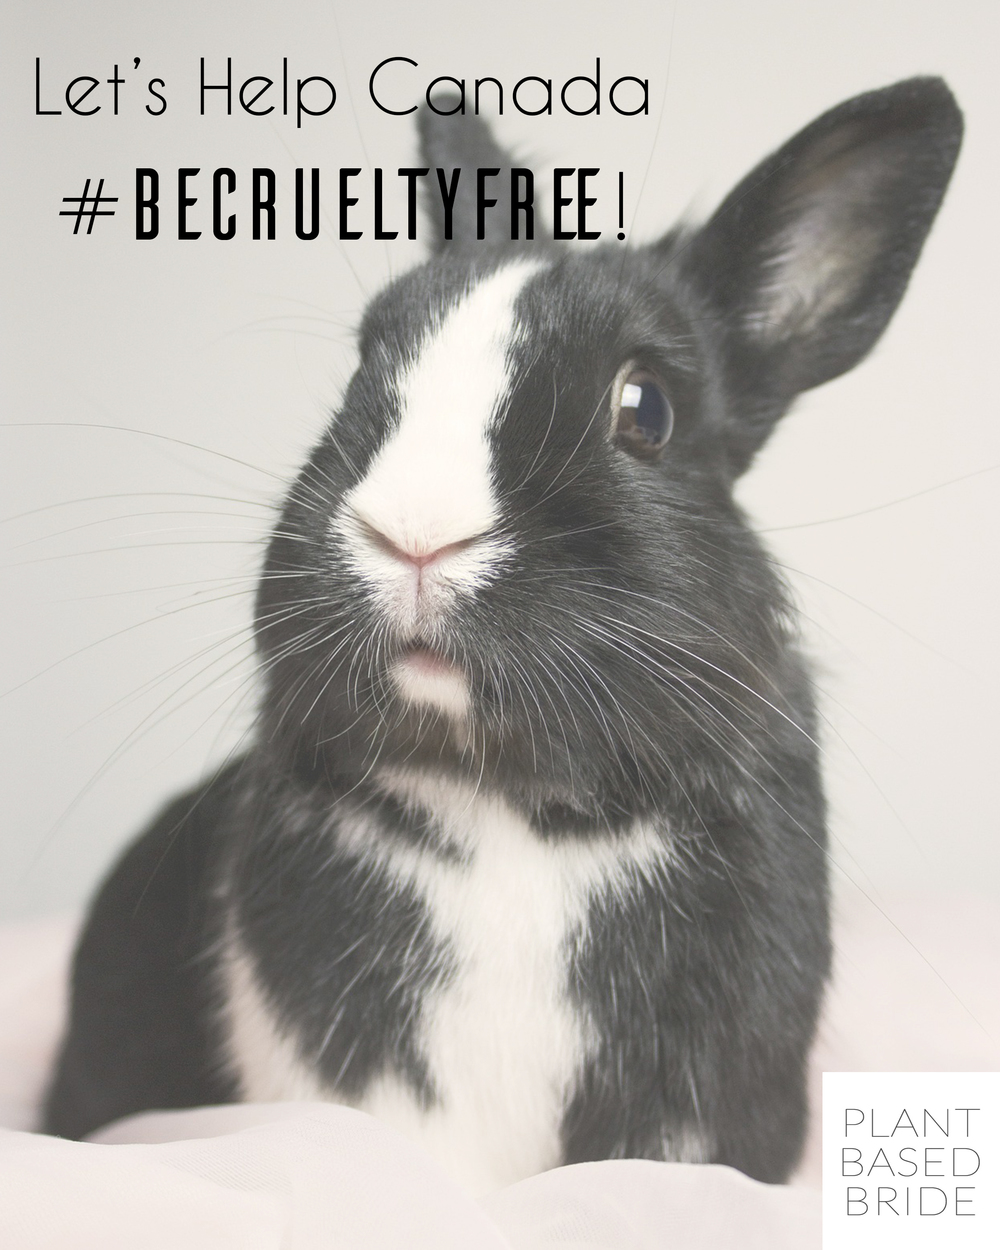 Canada is on it's way to prohibiting animal testing for cosmetics!  Let's help Canada #BeCrueltyFree by signing a petition of support and spreading the word!